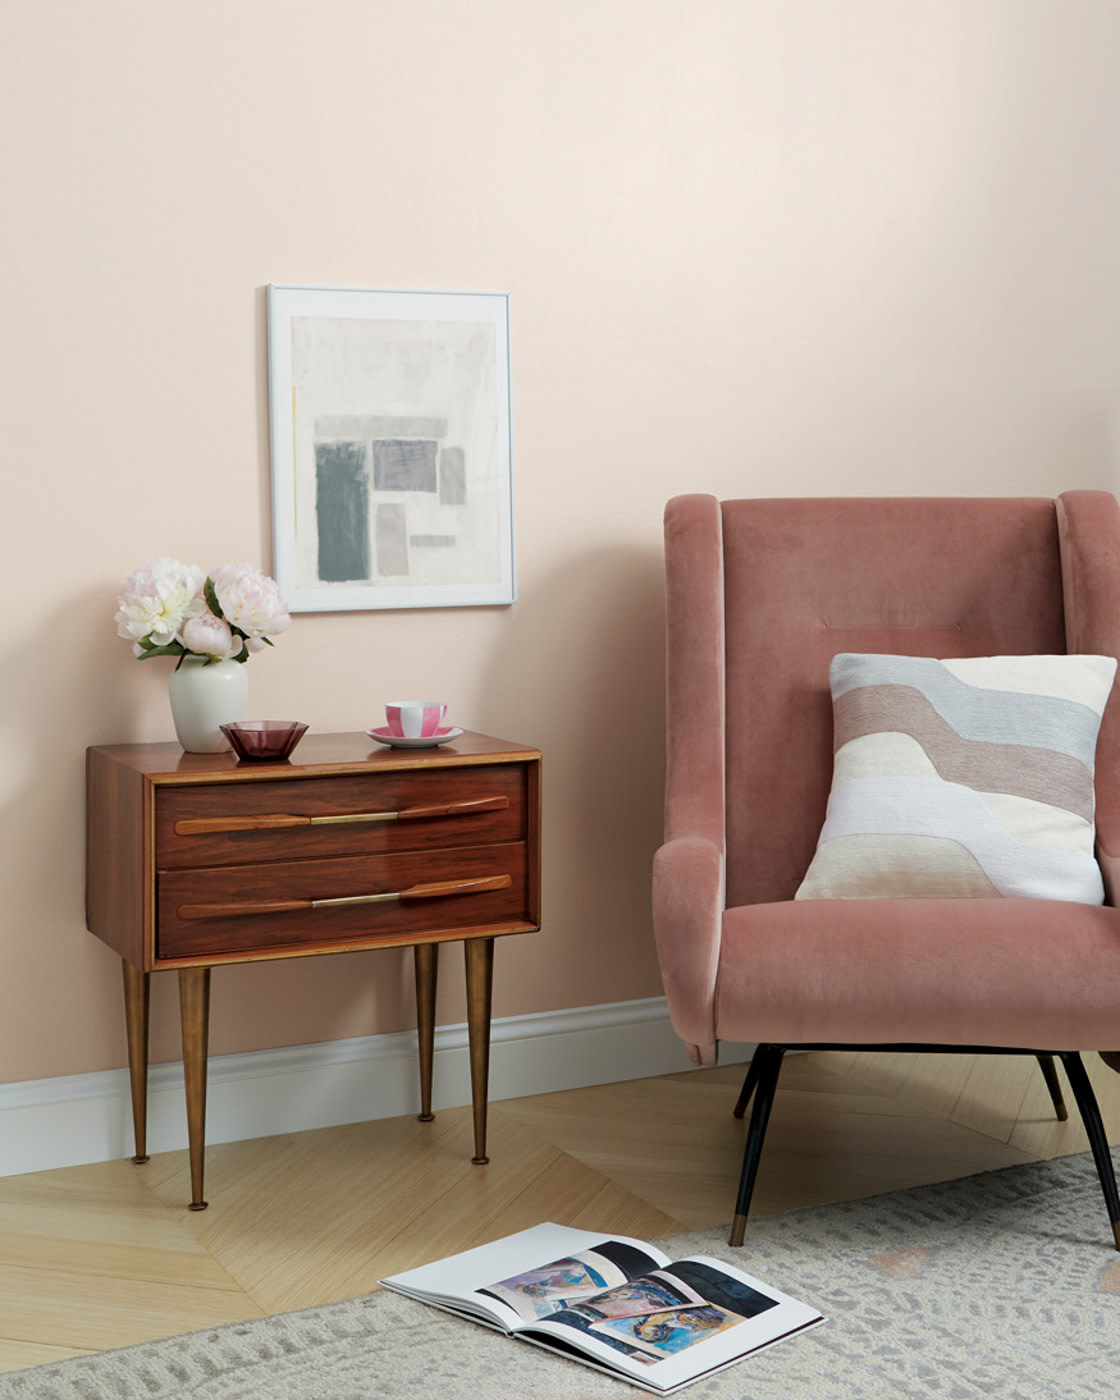 Clare paint light pale pink color in room